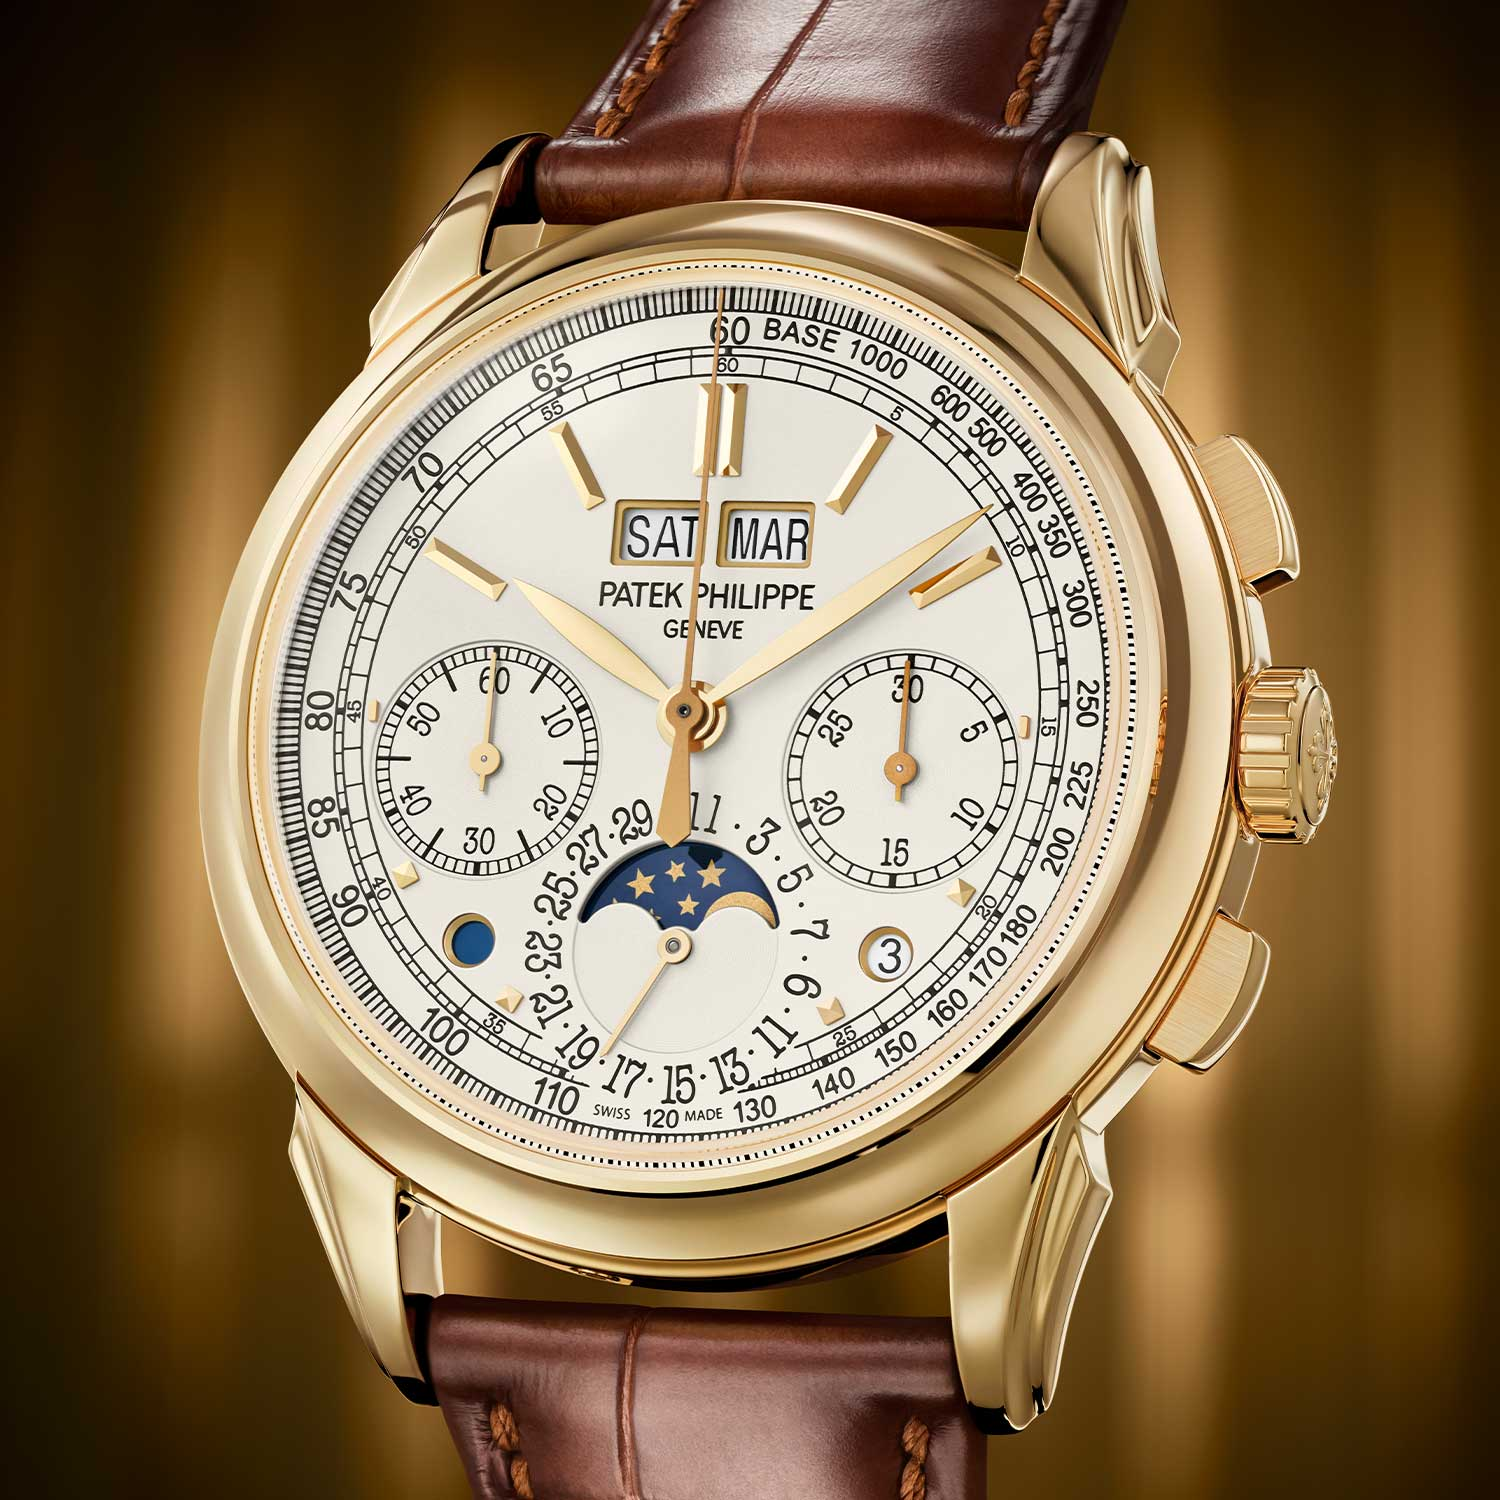 The Patek Philippe 5270 Perpetual Calendar Chronograph for the first time ever in yellow gold